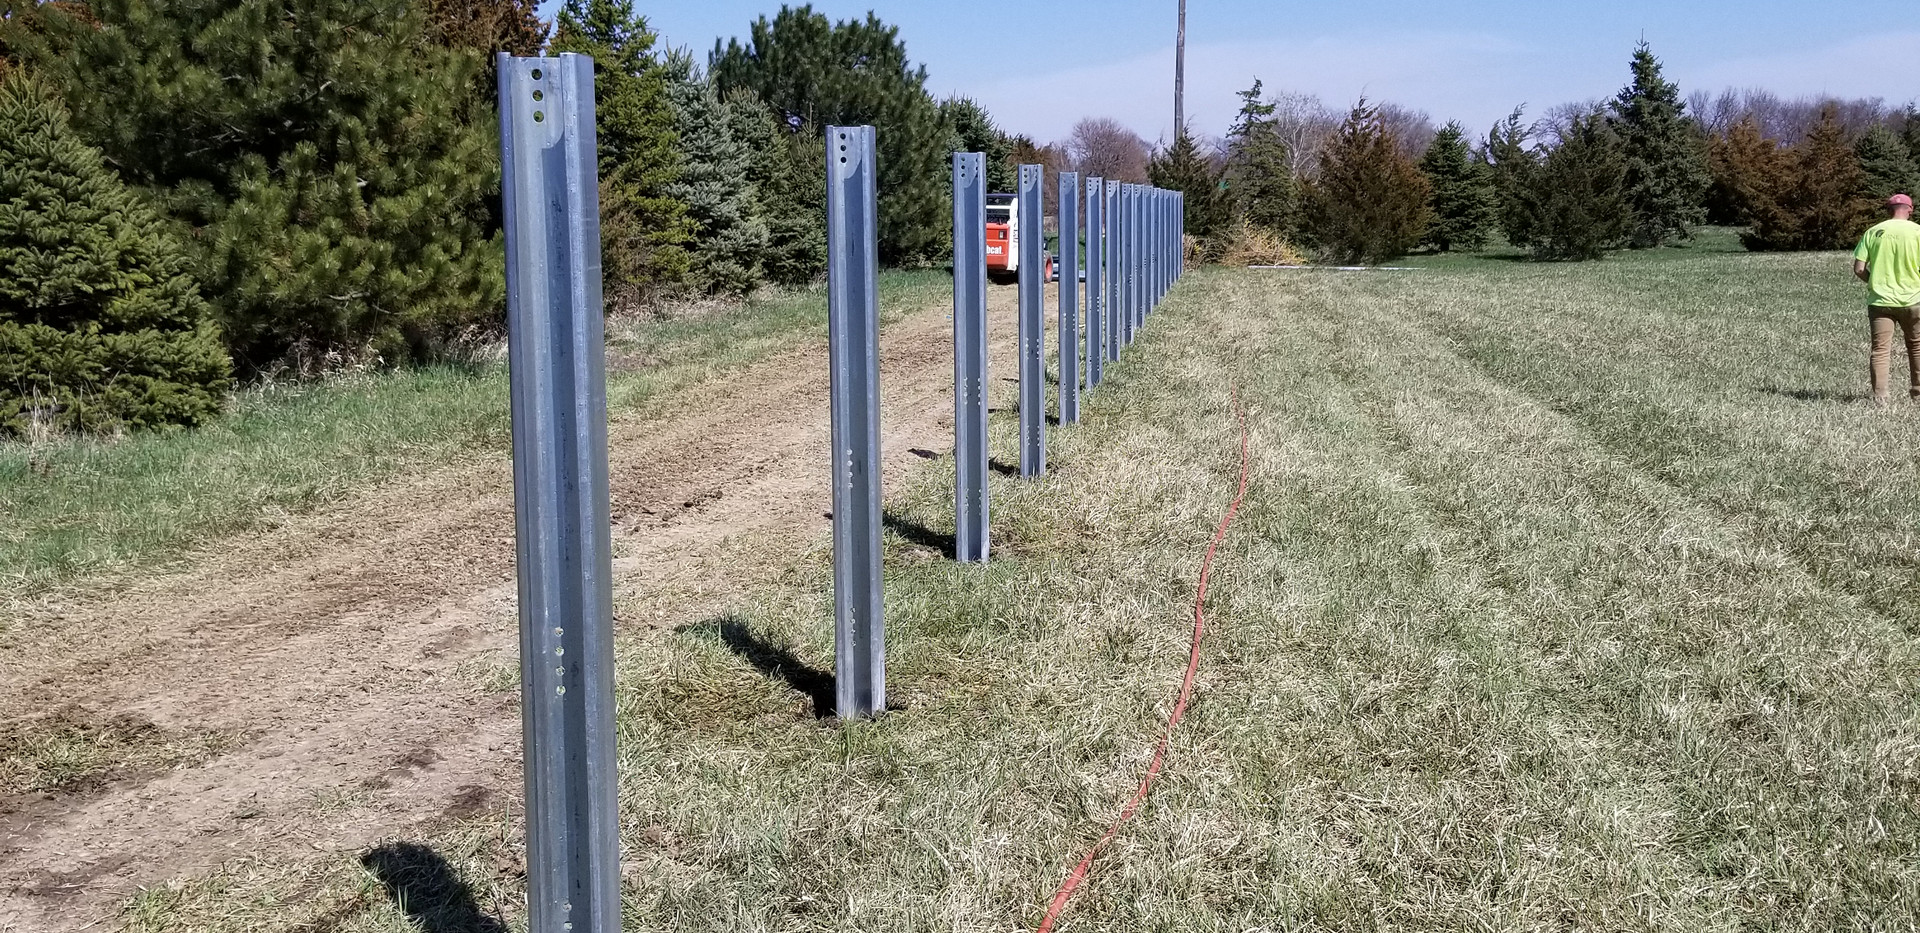 Posts in the Ground